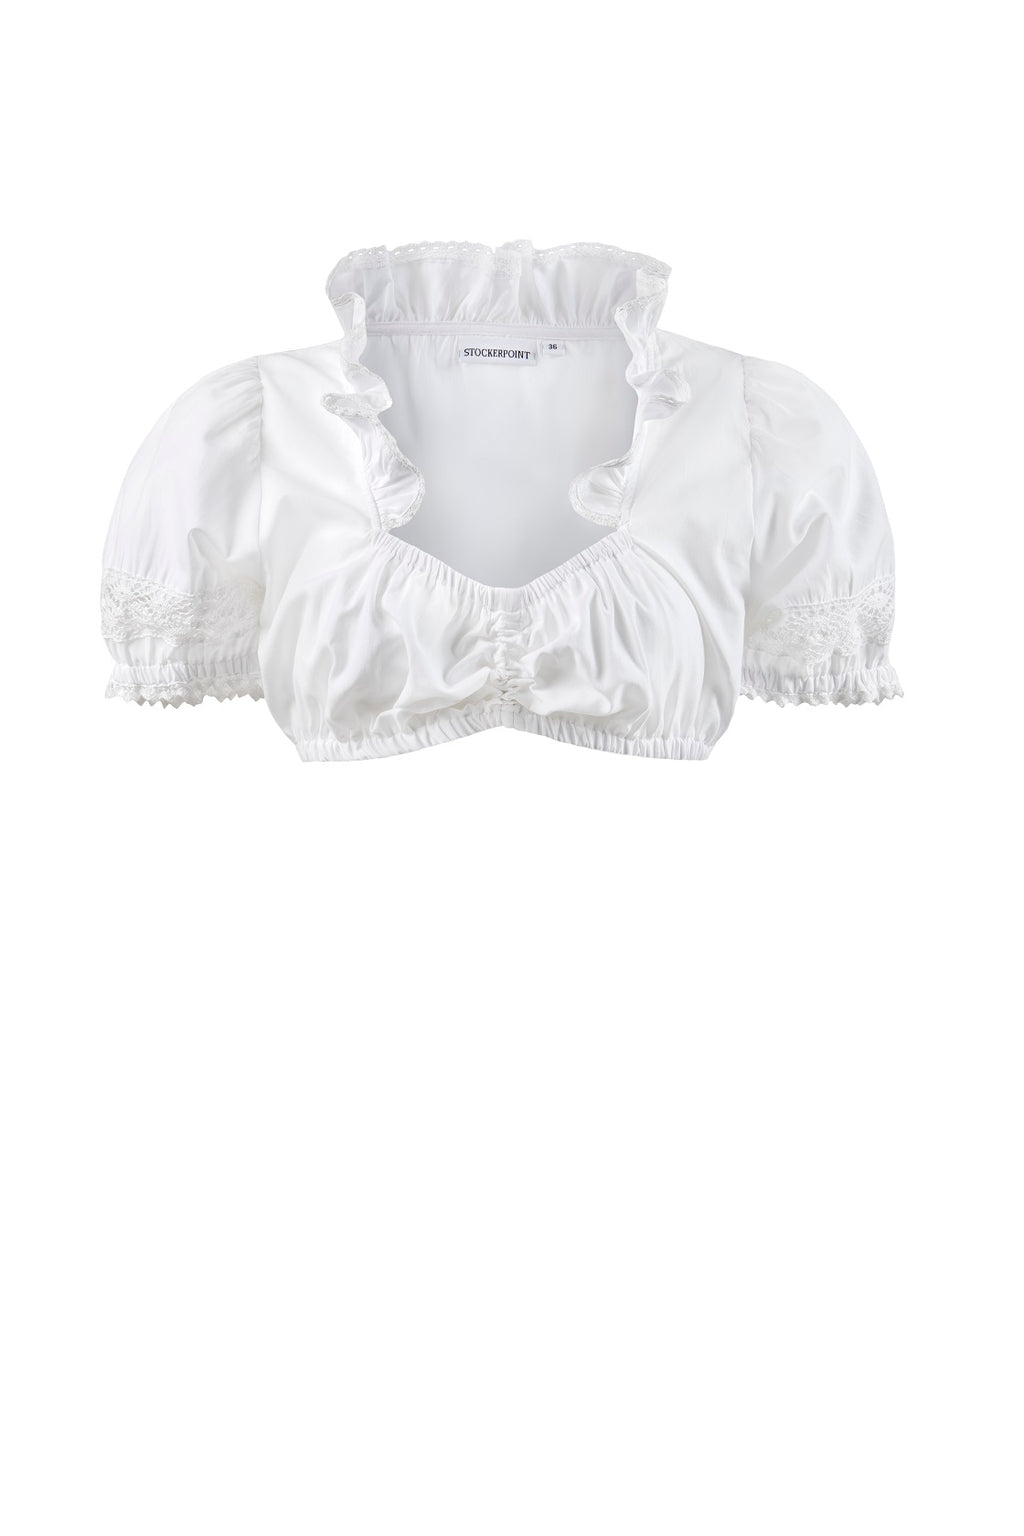 Stockerpoint Traditional Blouse B7200 White Size 46 In Stock